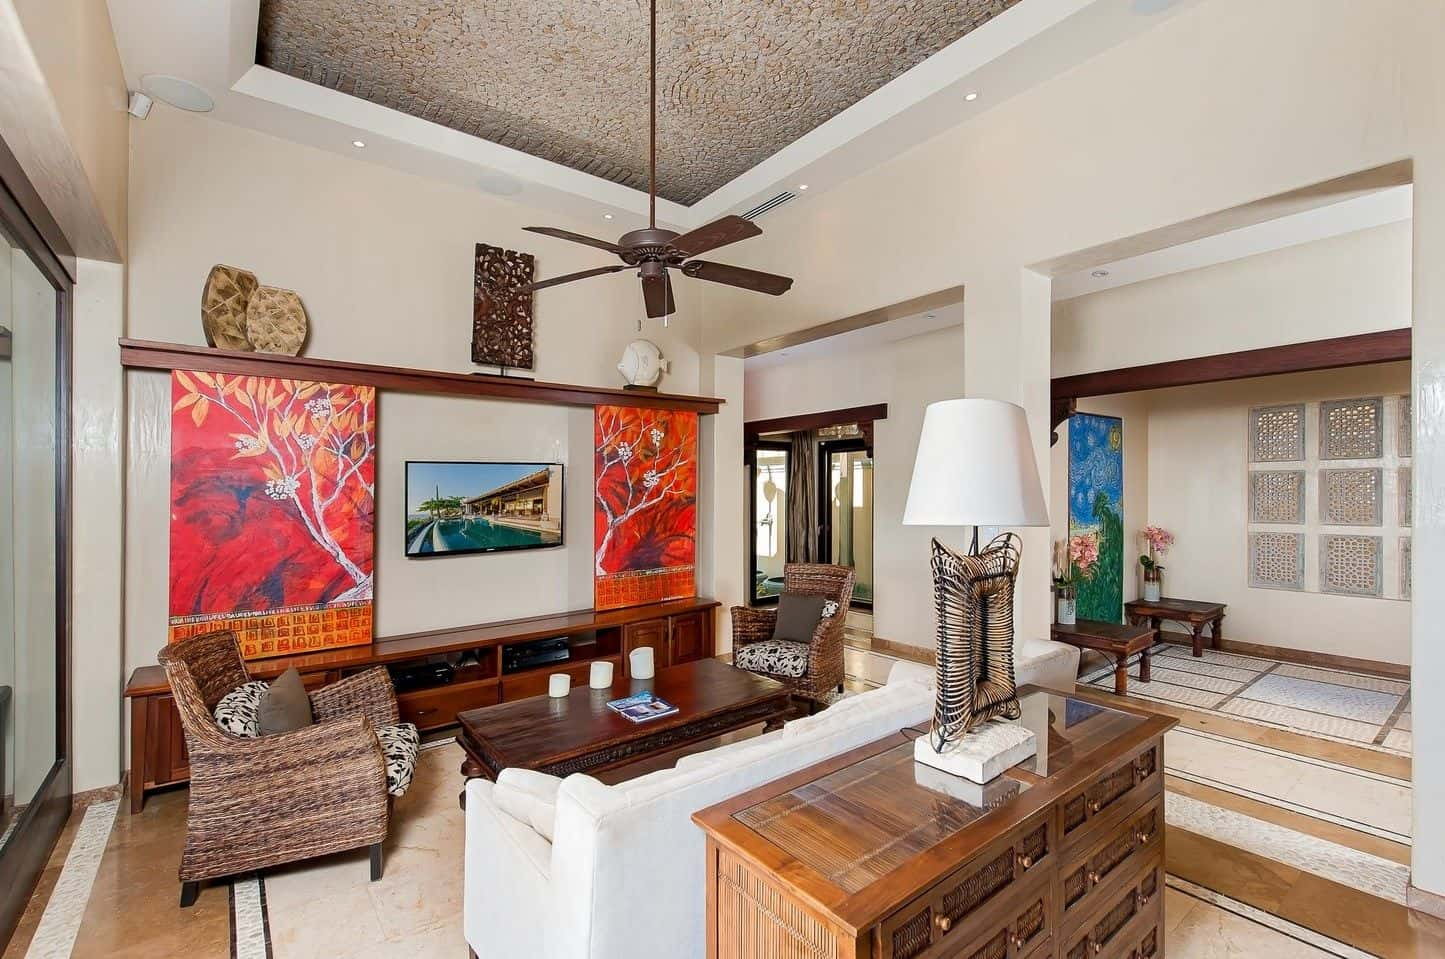 Charming living room decorated with a pair of lovely wall arts mounted above the TV stand. It has marble flooring and a stylish tray ceiling with a hanging vintage fan.